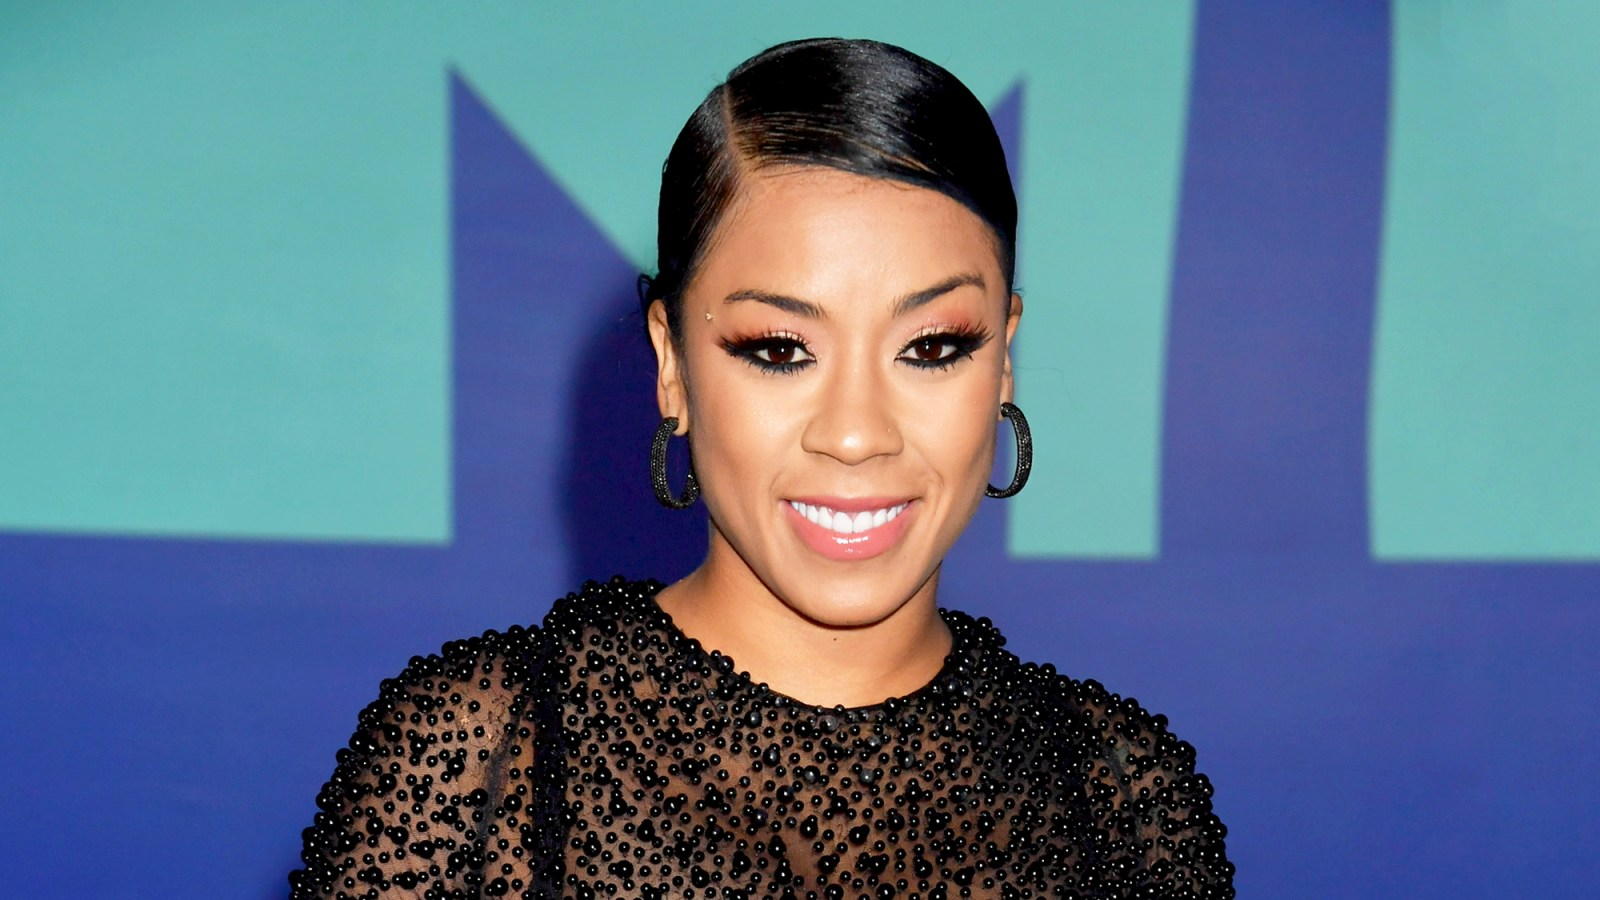 Keyshia Cole Is Not Pregnant Apologizes For Trolling